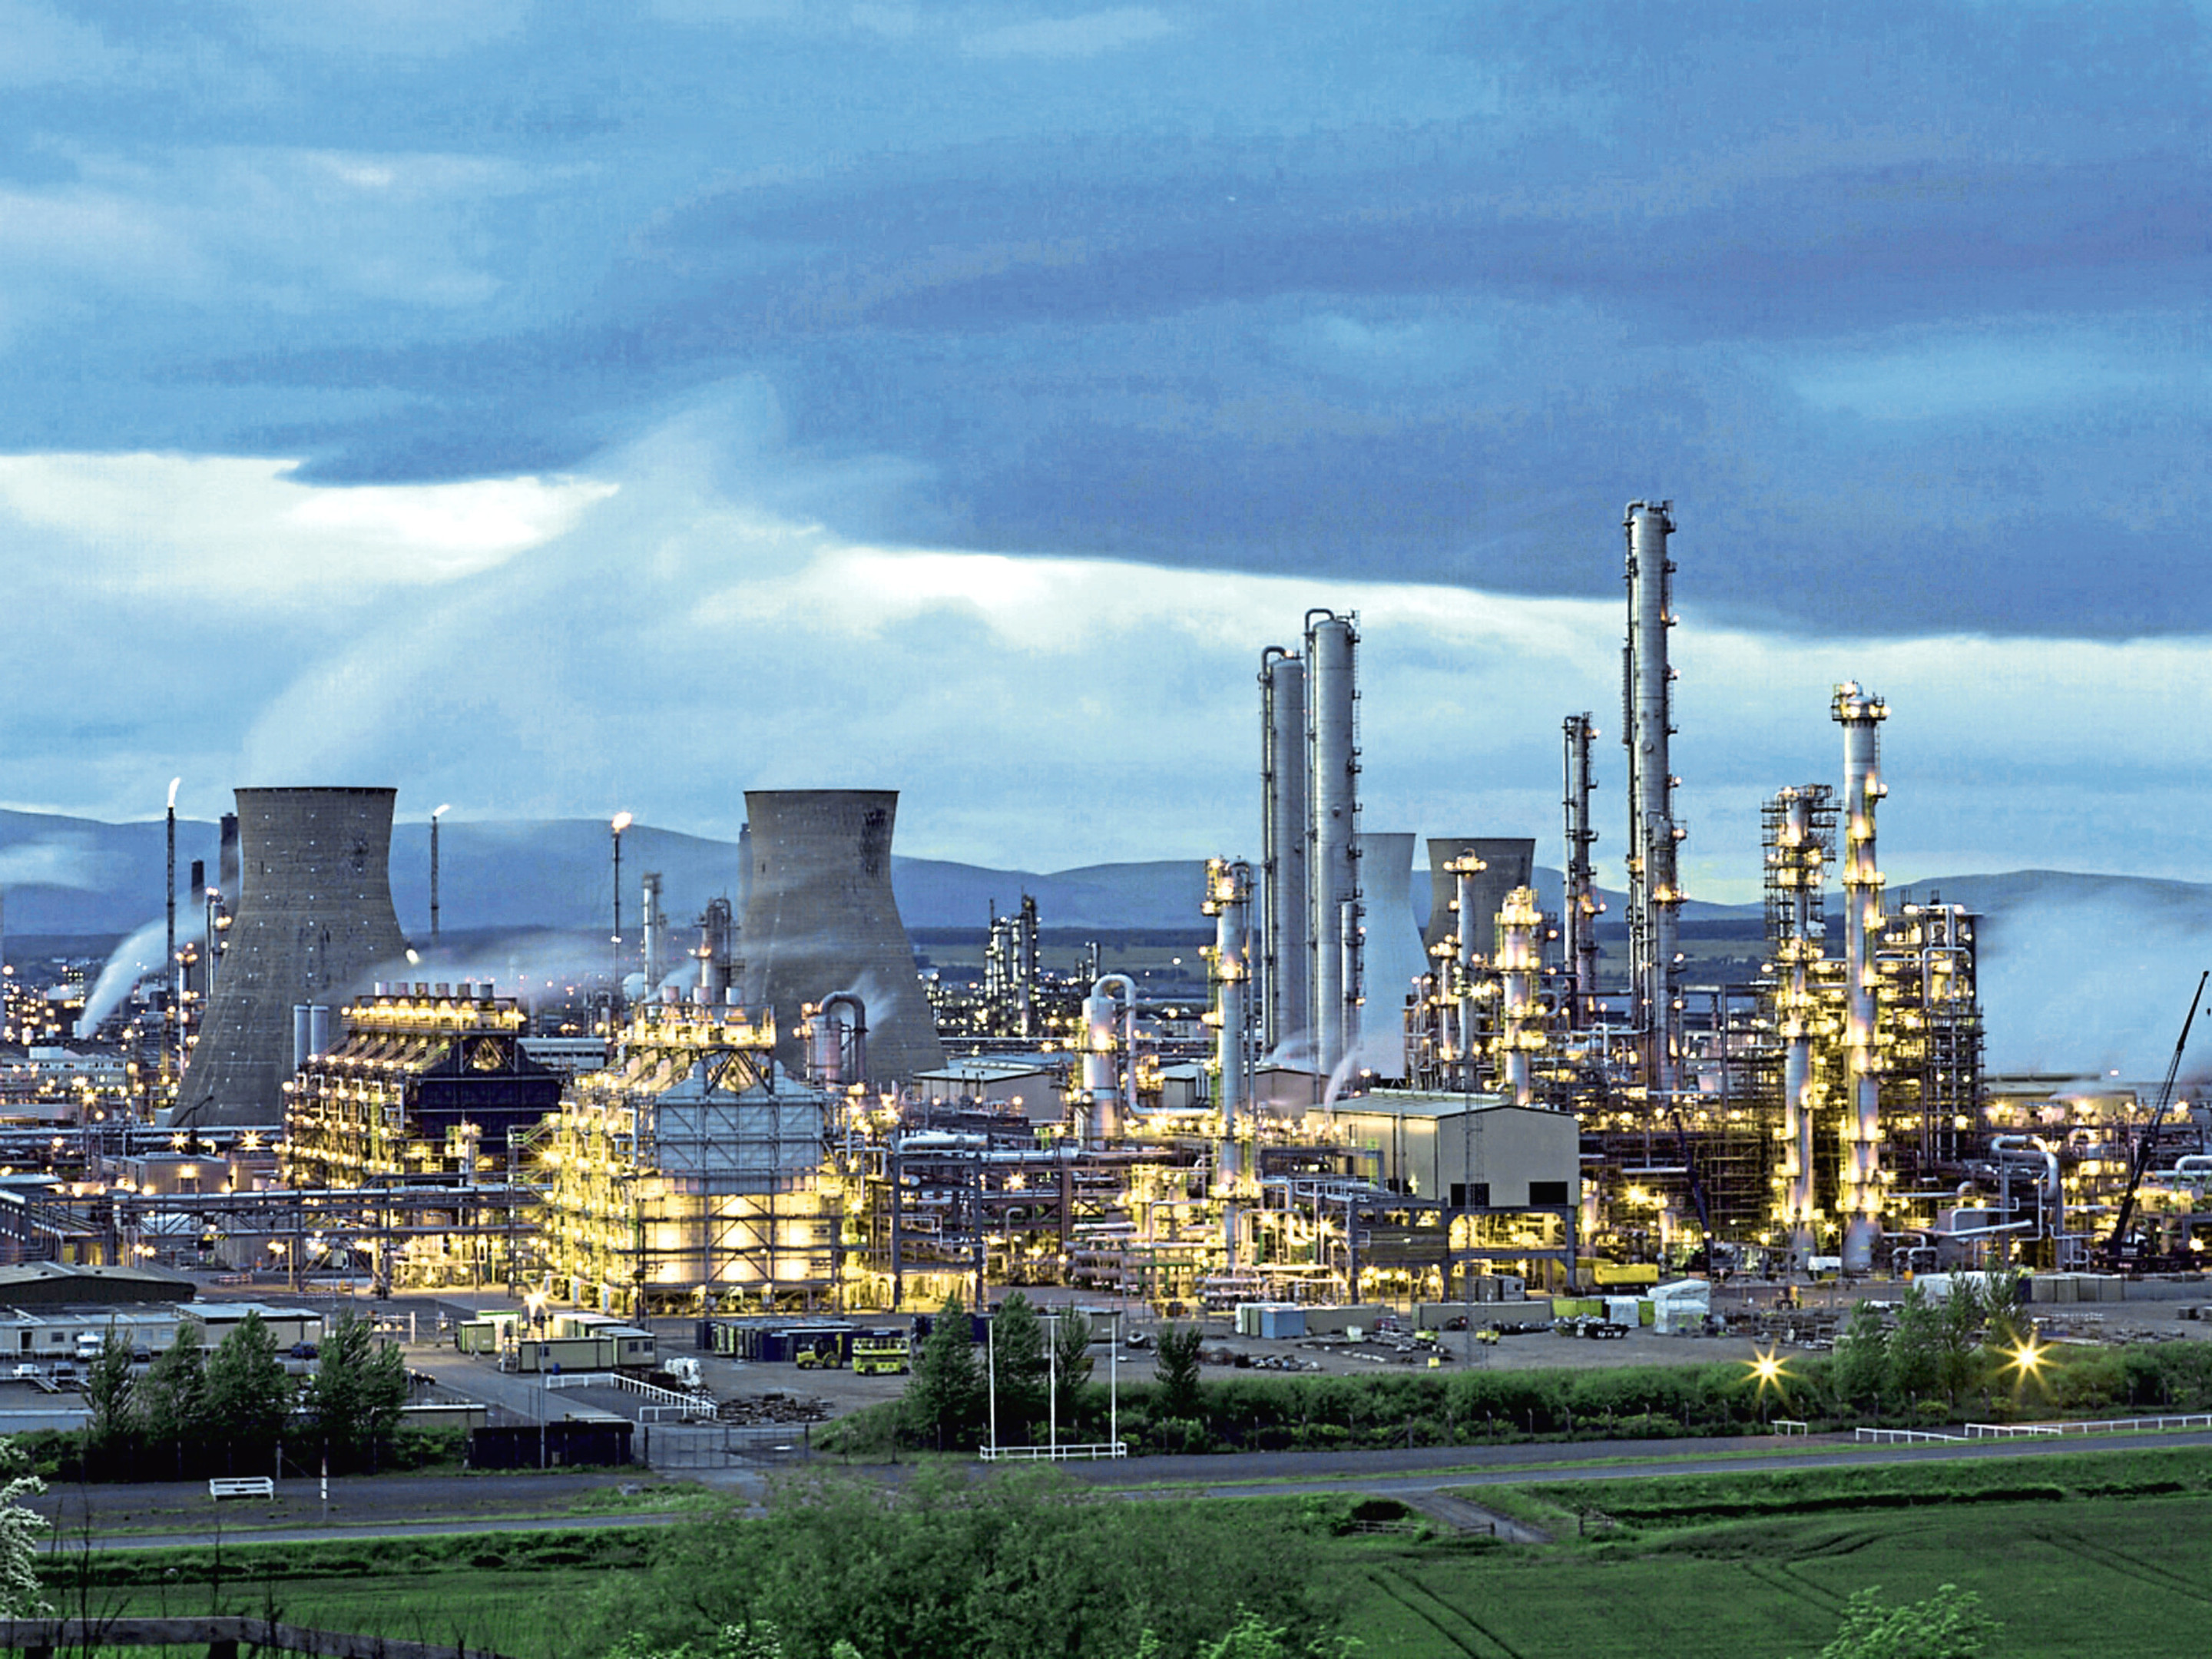 The Grangemouth site operated by Ineos.